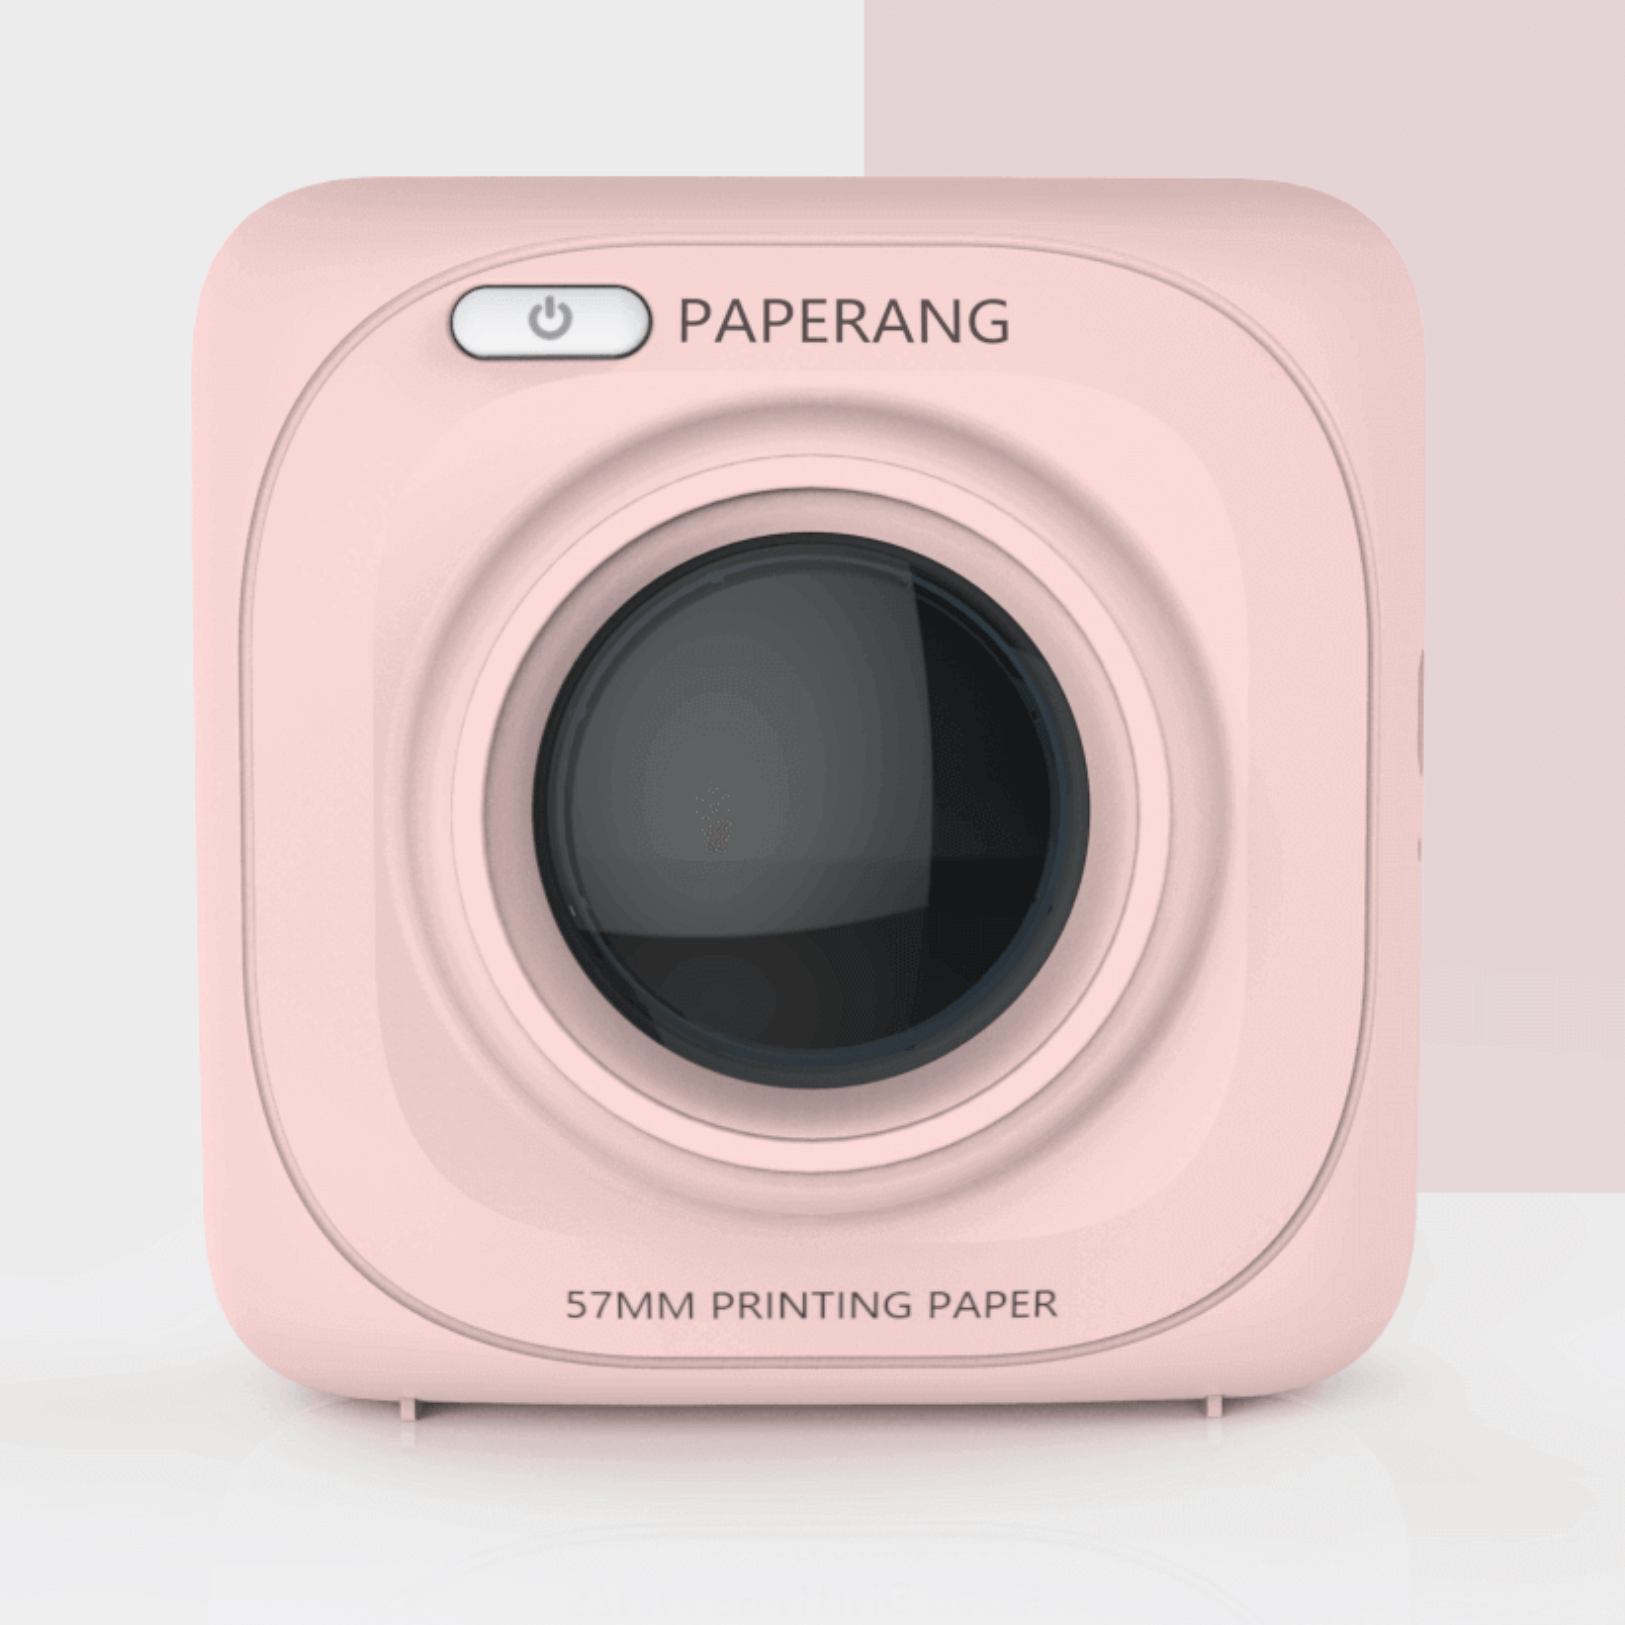 Paperang P1s Limited Edition - PAPERANGPRINT